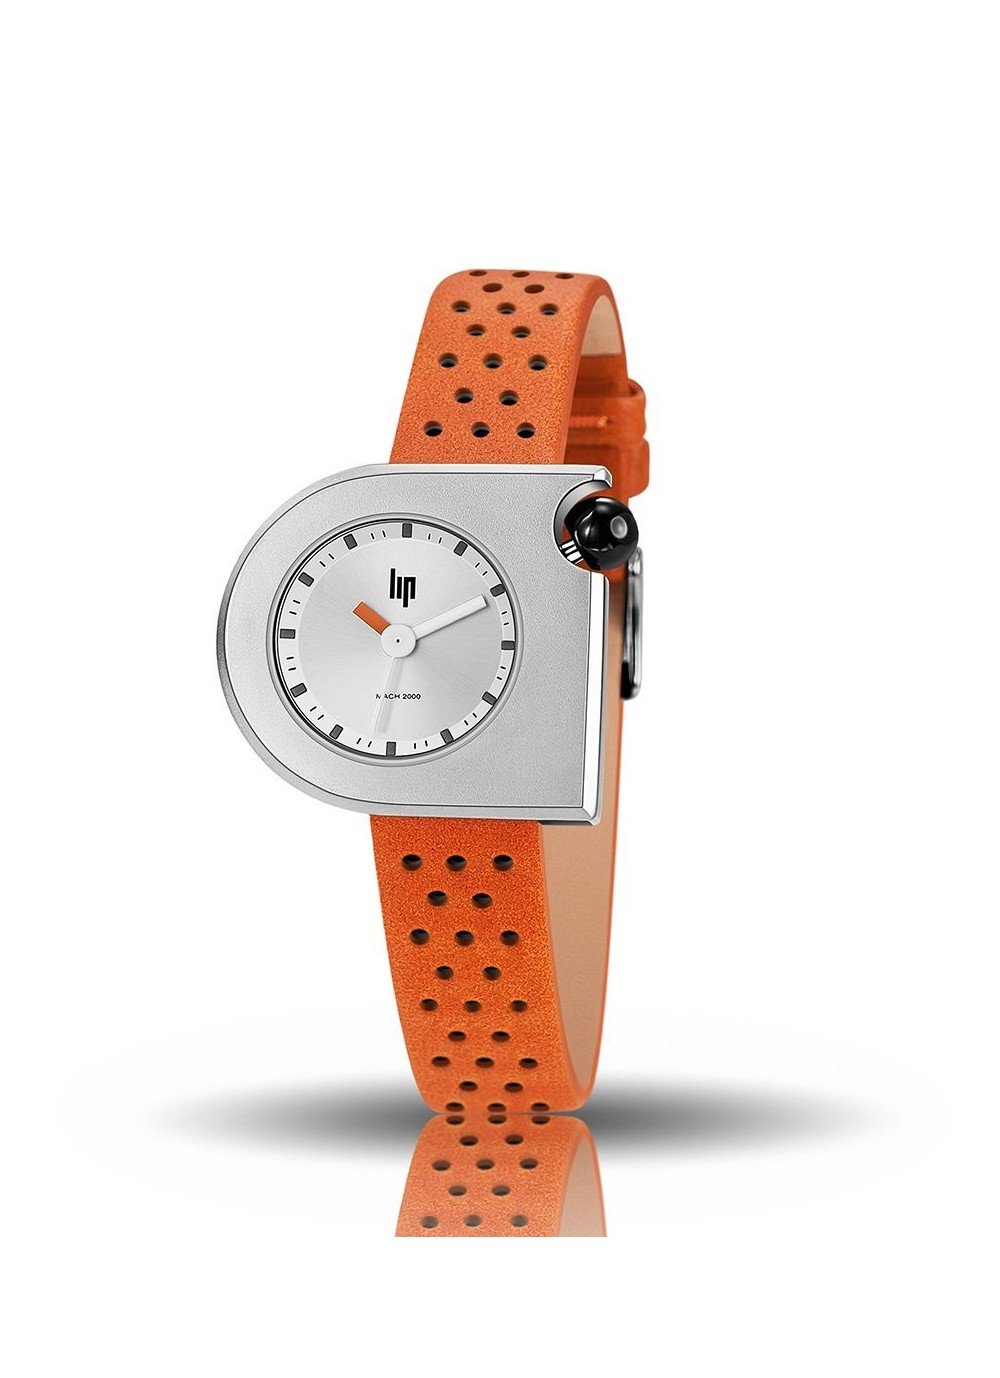 Mach 2000 mini bracelet cuir orange perforé, cadran gris